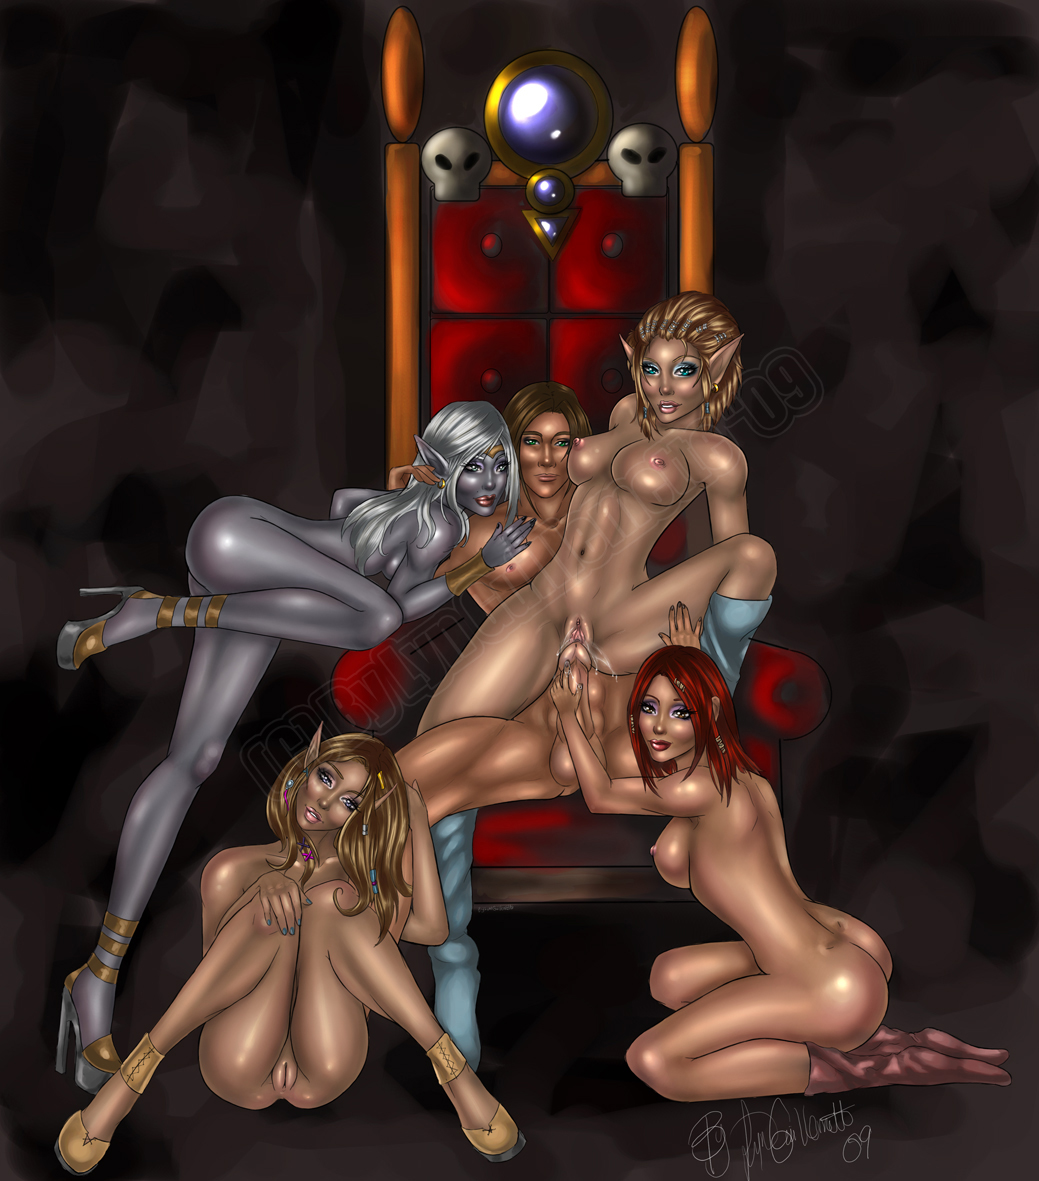 Nude sexy video dungeons and dragons cartoon films